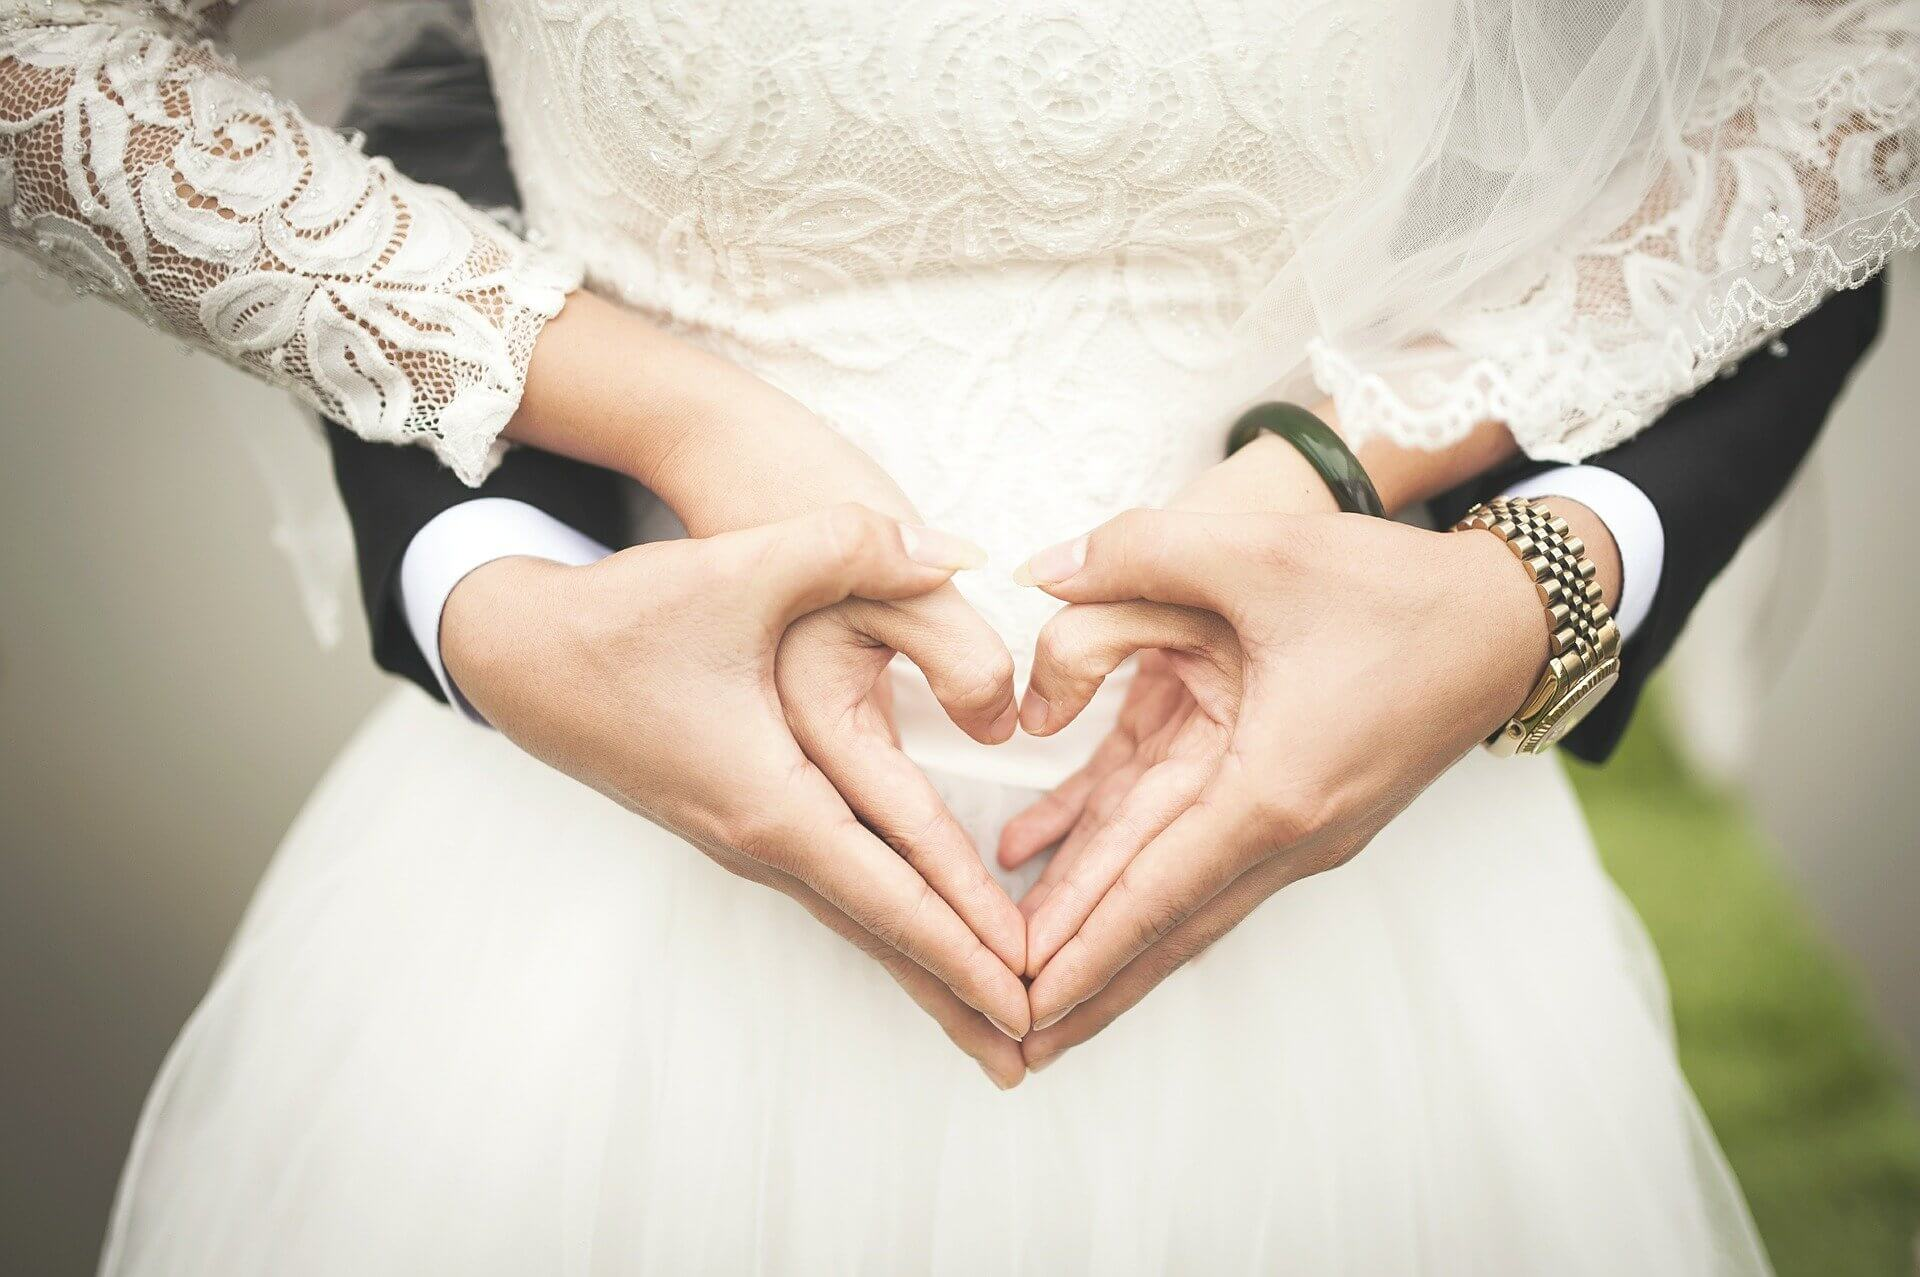 A man and woman at a wedding with hands held in a heart shape